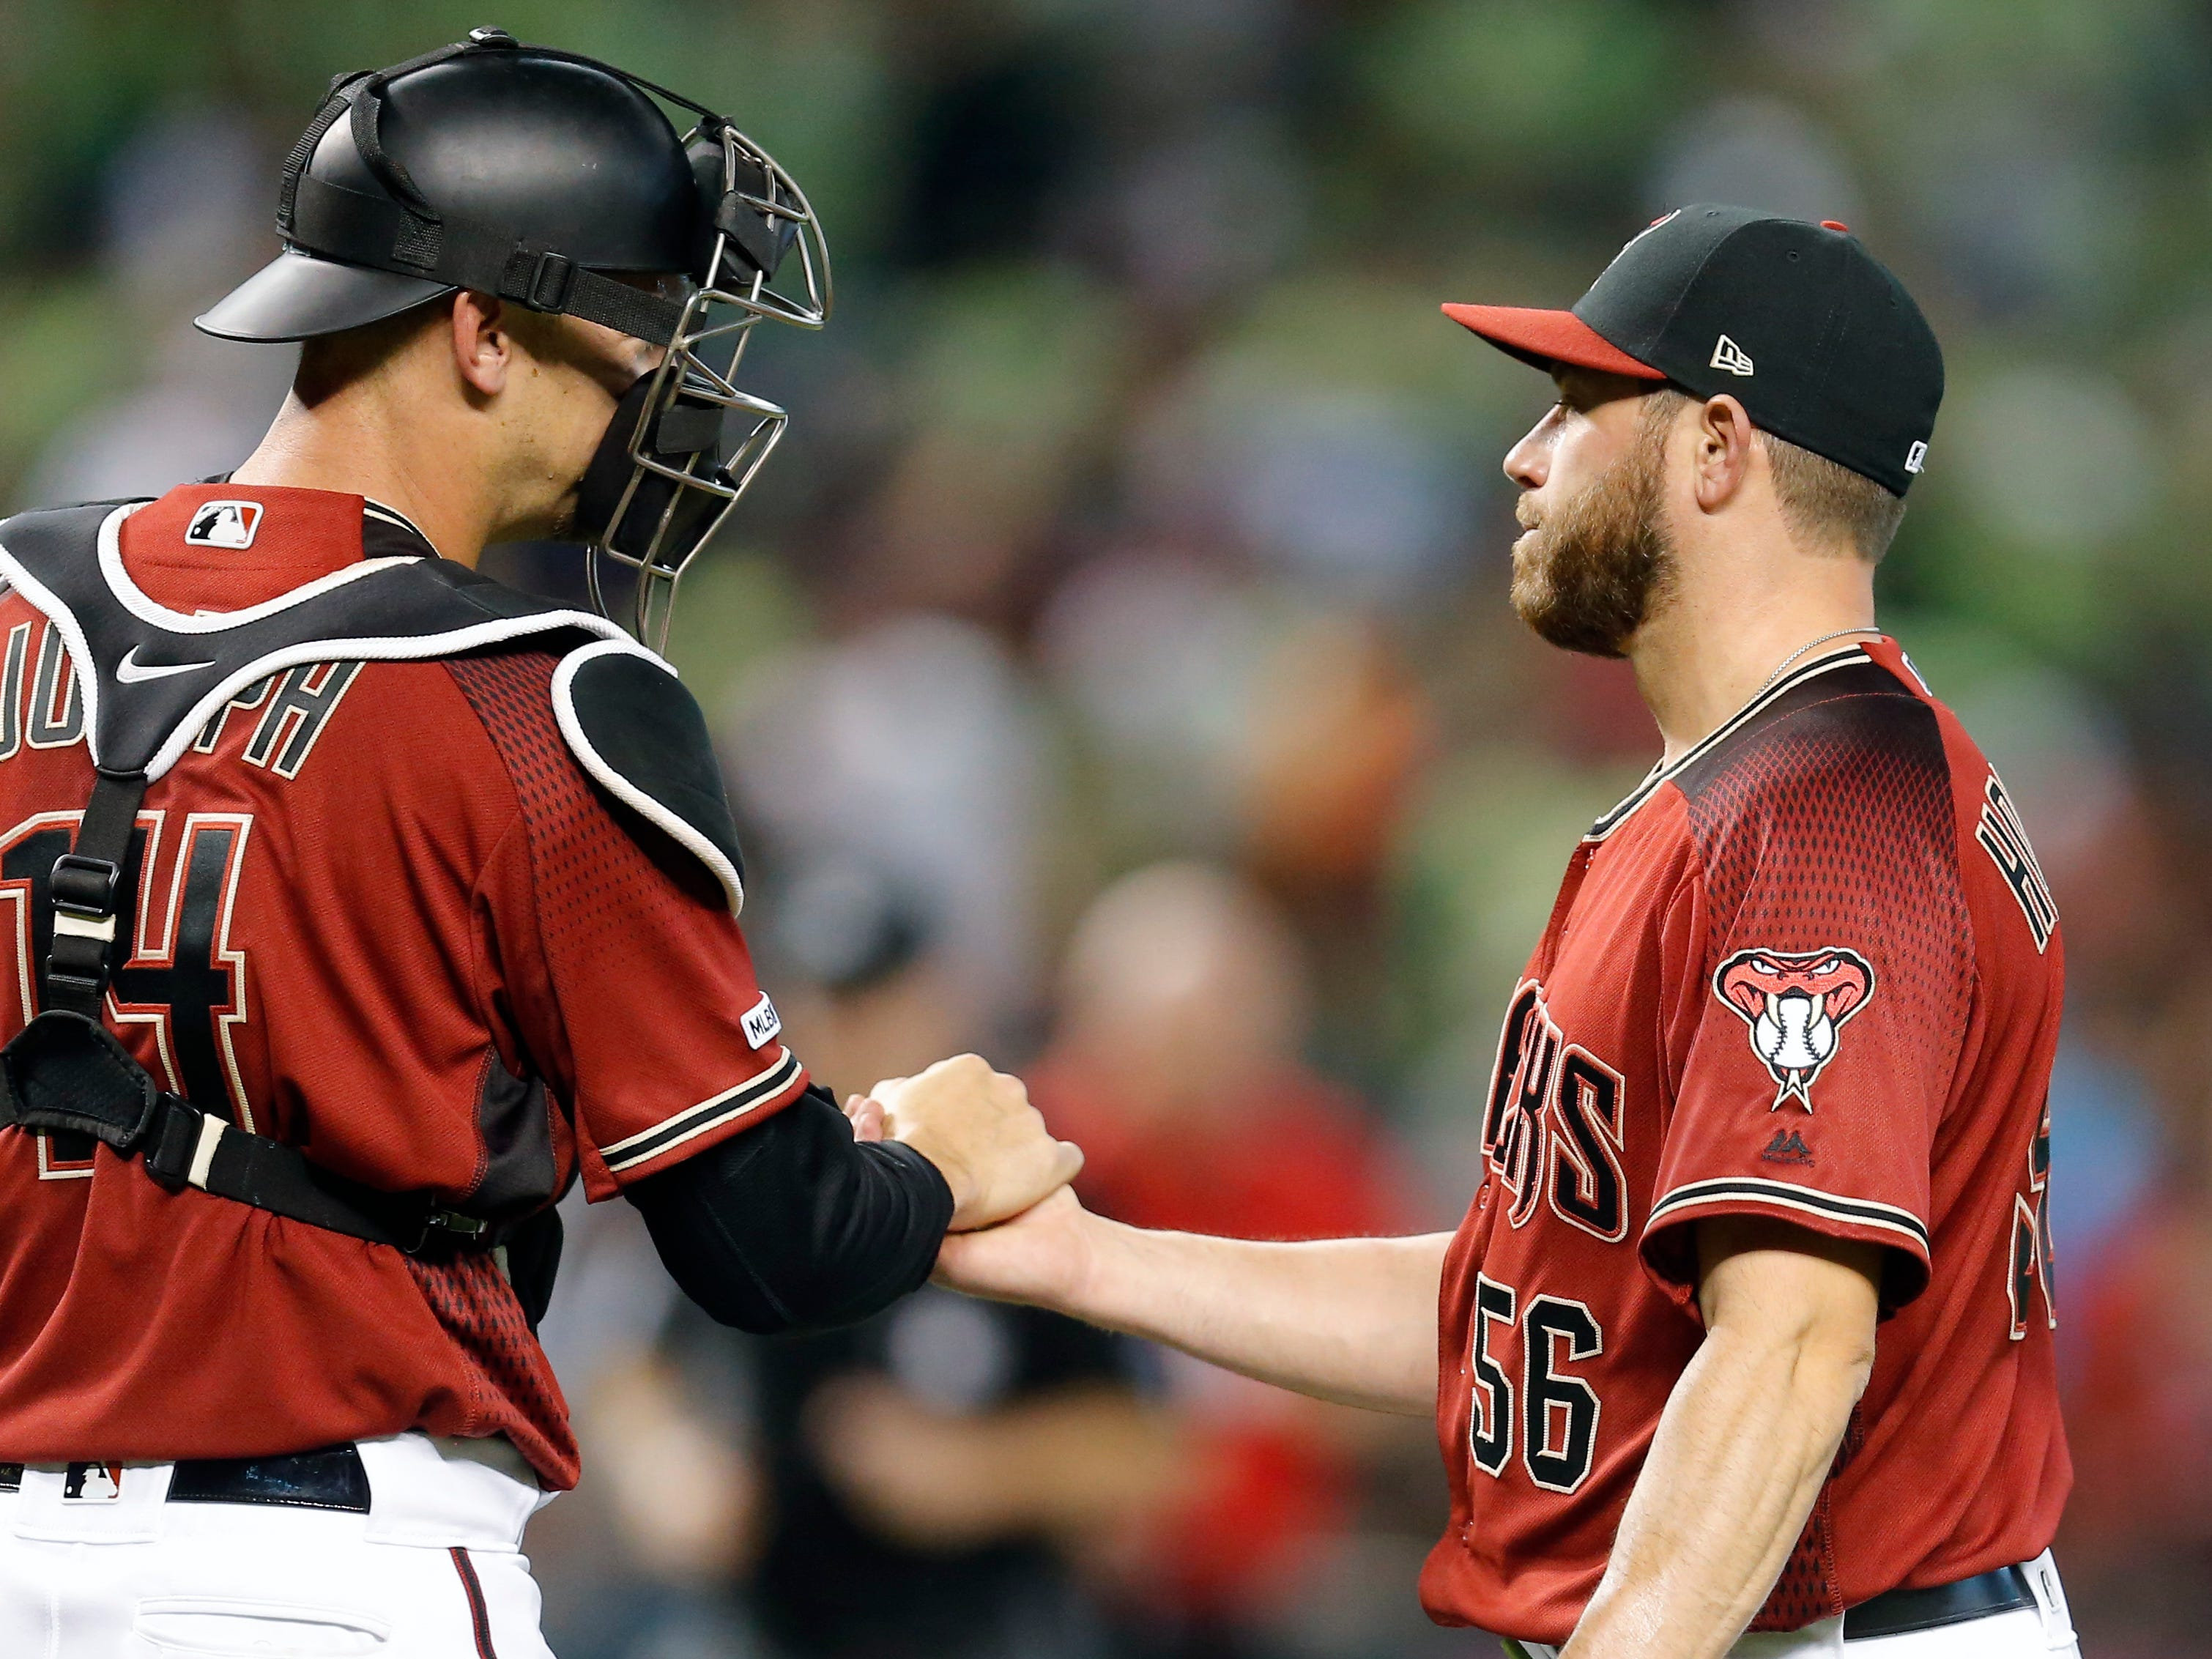 Arizona Diamondbacks pitcher Greg Holland (56) and Caleb Joseph celebrate after defeating the San Diego Padres during a baseball game, Sunday, April 14, 2019, in Phoenix. (AP Photo/Rick Scuteri)